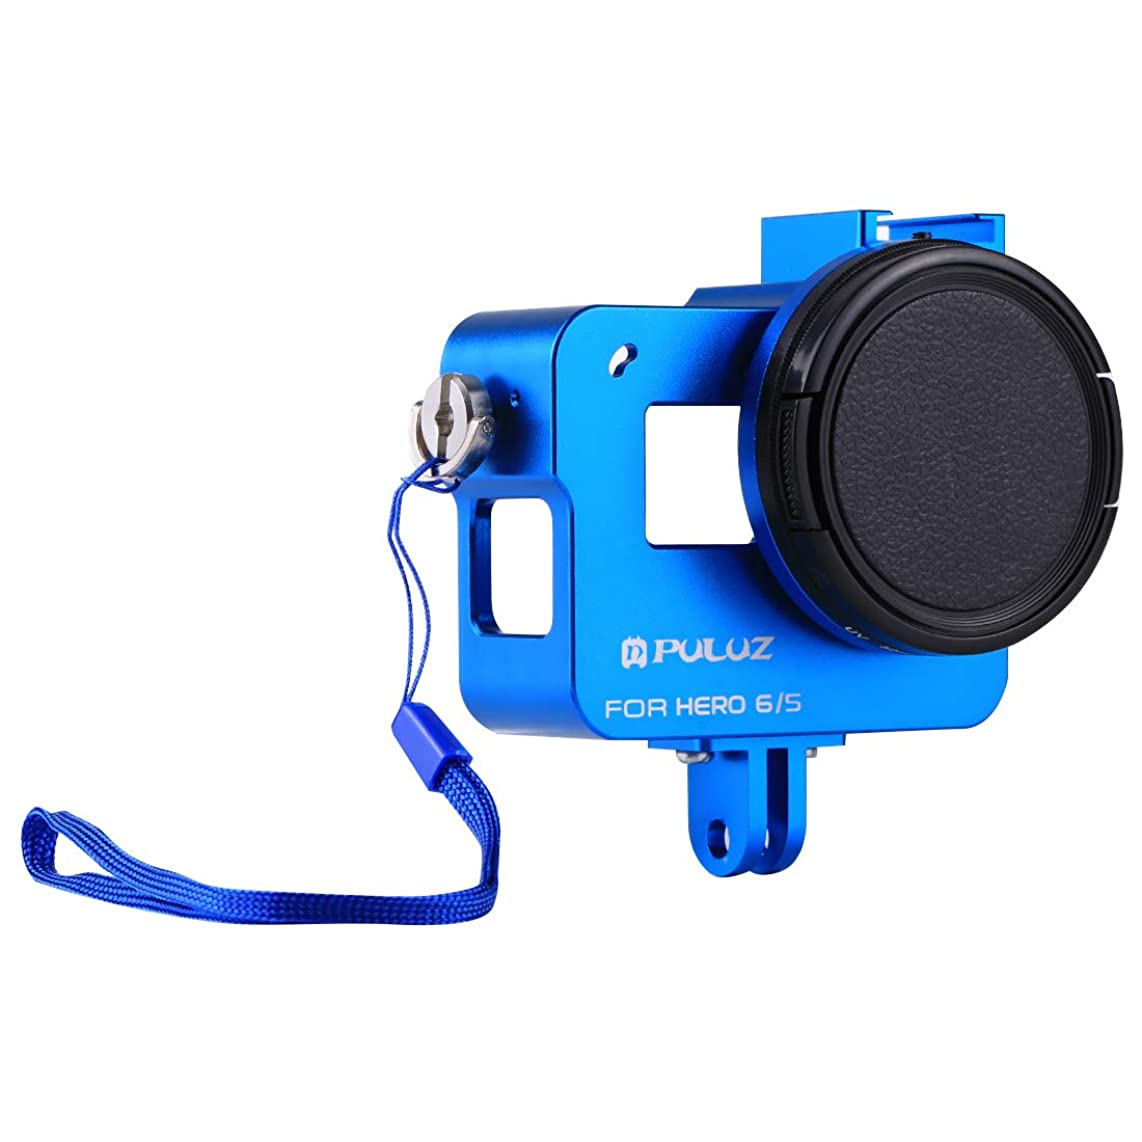 XINGRUI Boutique Accessories PULUZ Housing Shell CNC Aluminum Alloy Protective Cage with 52mm UV Lens for GoPro Hero(2018) /7 Black /6/5(Black) XINGRUI (Color : Blue)